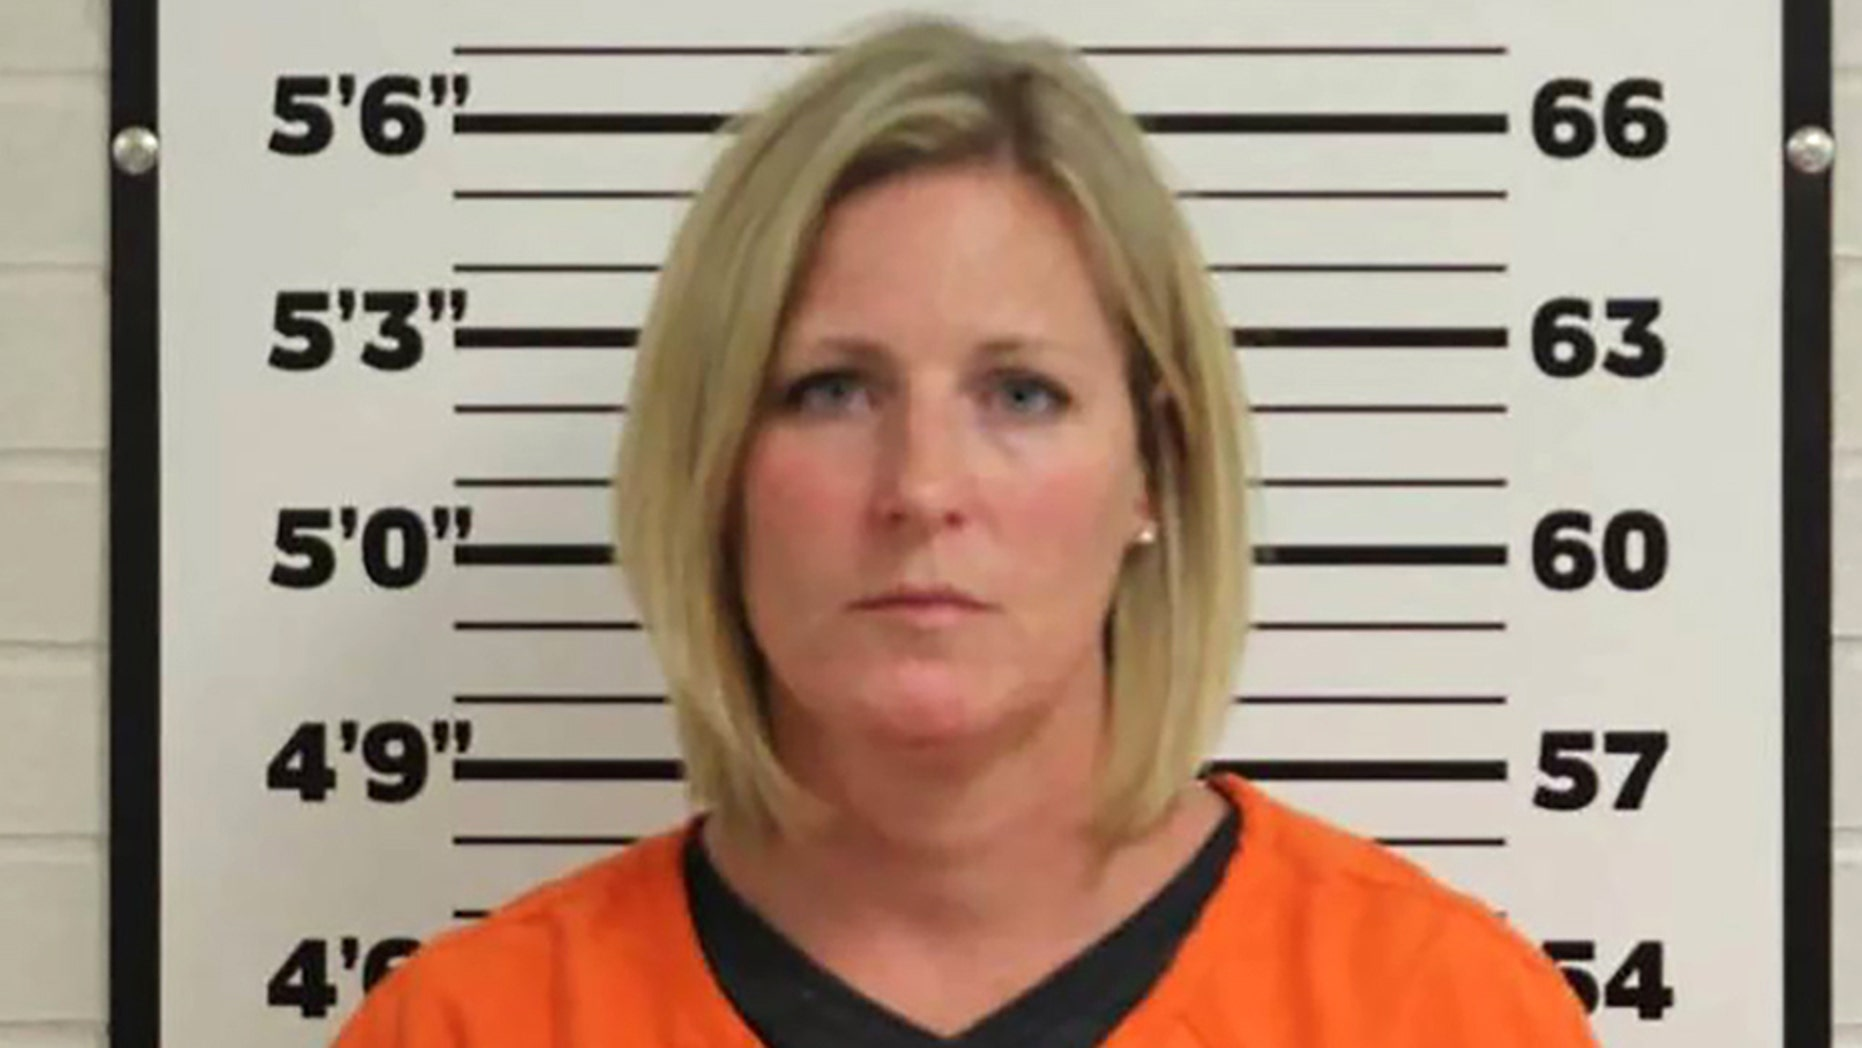 Elizabeth Giesler, 39, an assistant high school principal in Missouri, was charged Friday with felony sexual contact with a student, felony second-degree statutory sodomy and second-degree statutory rape. (Ste. Genevieve County Sheriff's Office)